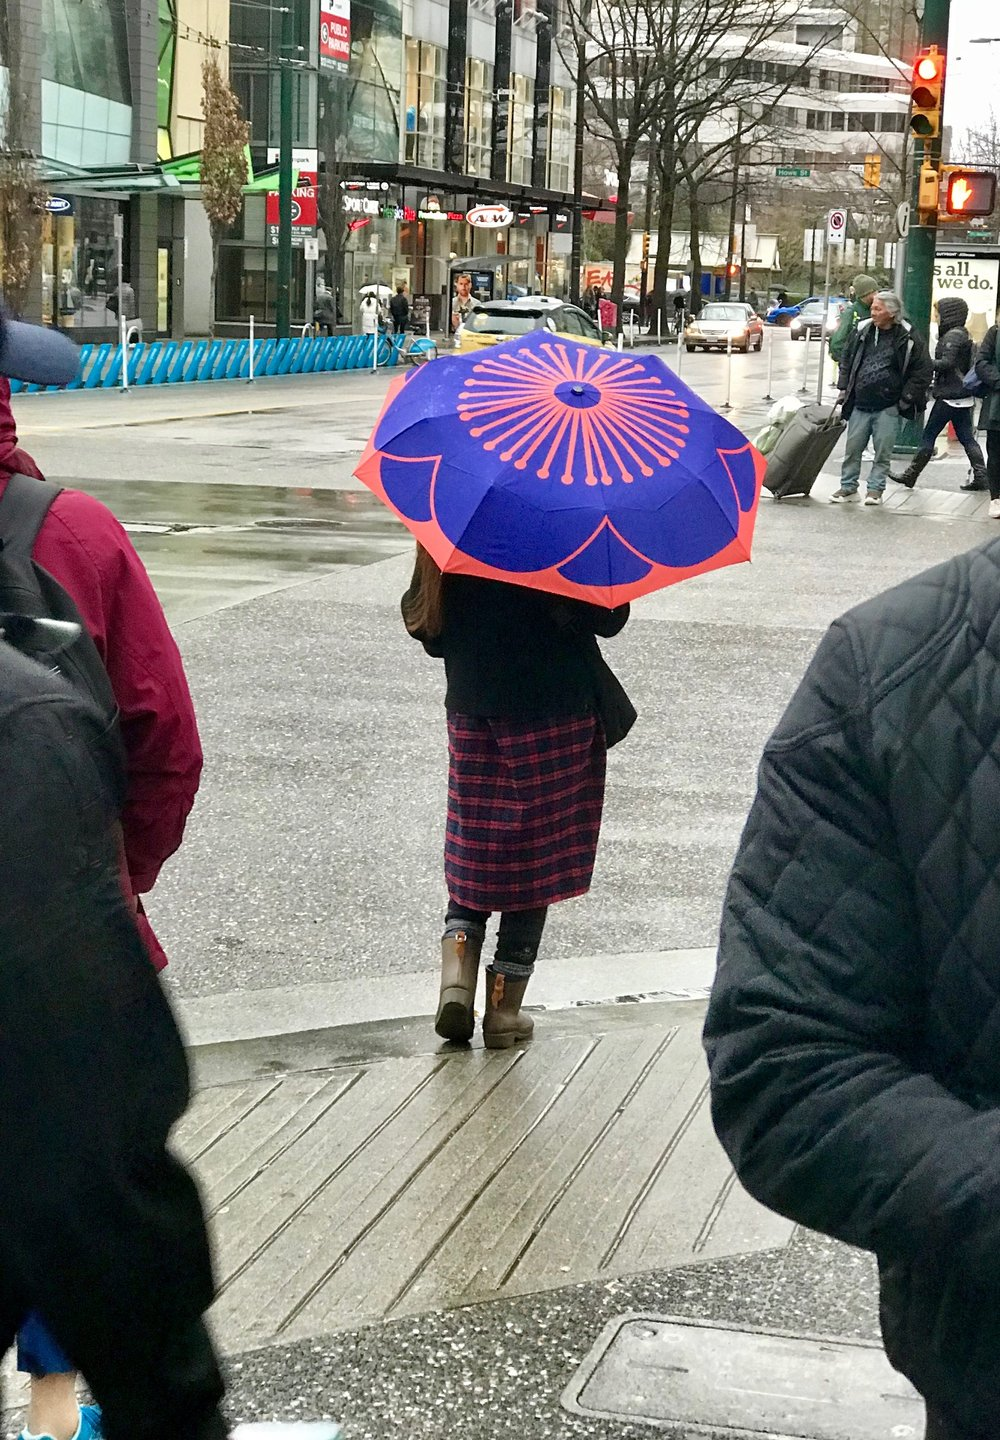 While most of the umbrellas in Vancouver are black and boring, this one made me smile.